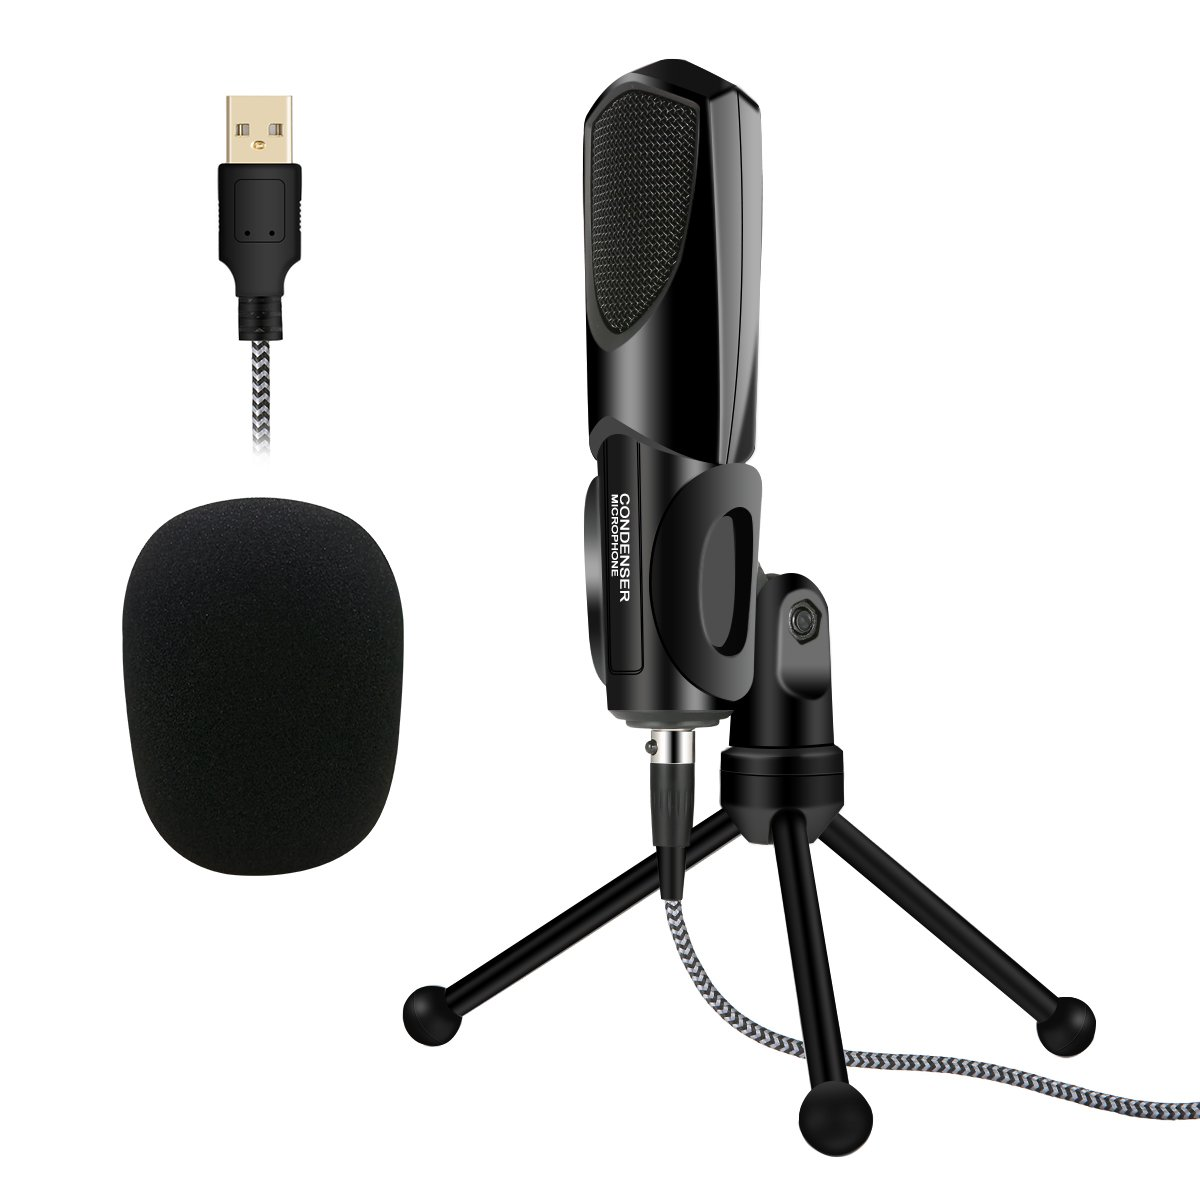 USB Microphone, ELEGIANT Plug & Play Full Metal Condenser Microphone Recording Home Studio PC Microphone for Skype, Recording for YouTube, Google Voice Search, Gaming (Windows/Mac) - Q3